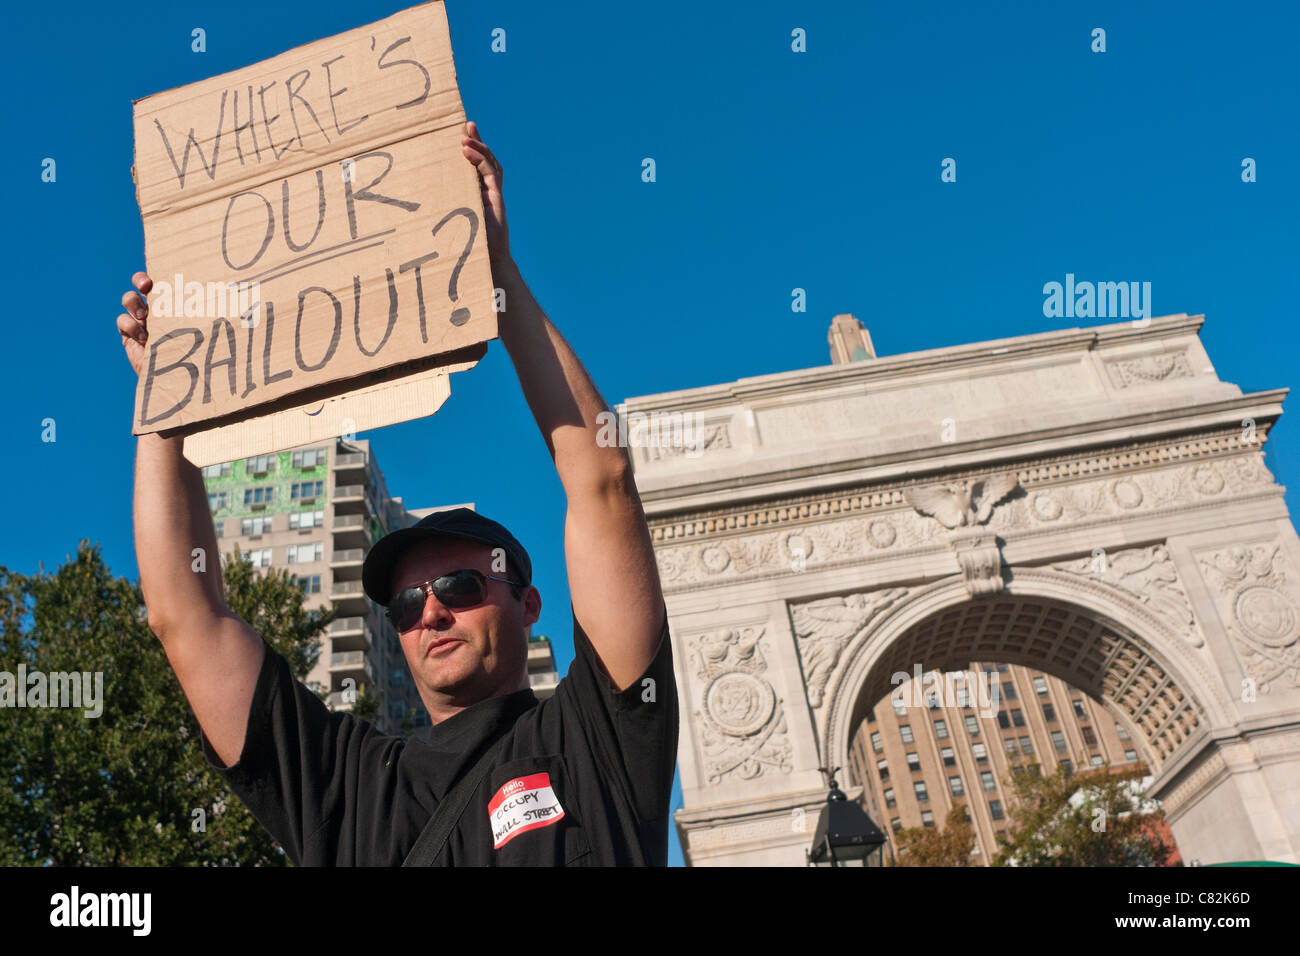 OccupyWallStreet takes their General Assembly to Washington Square Park - Stock Image